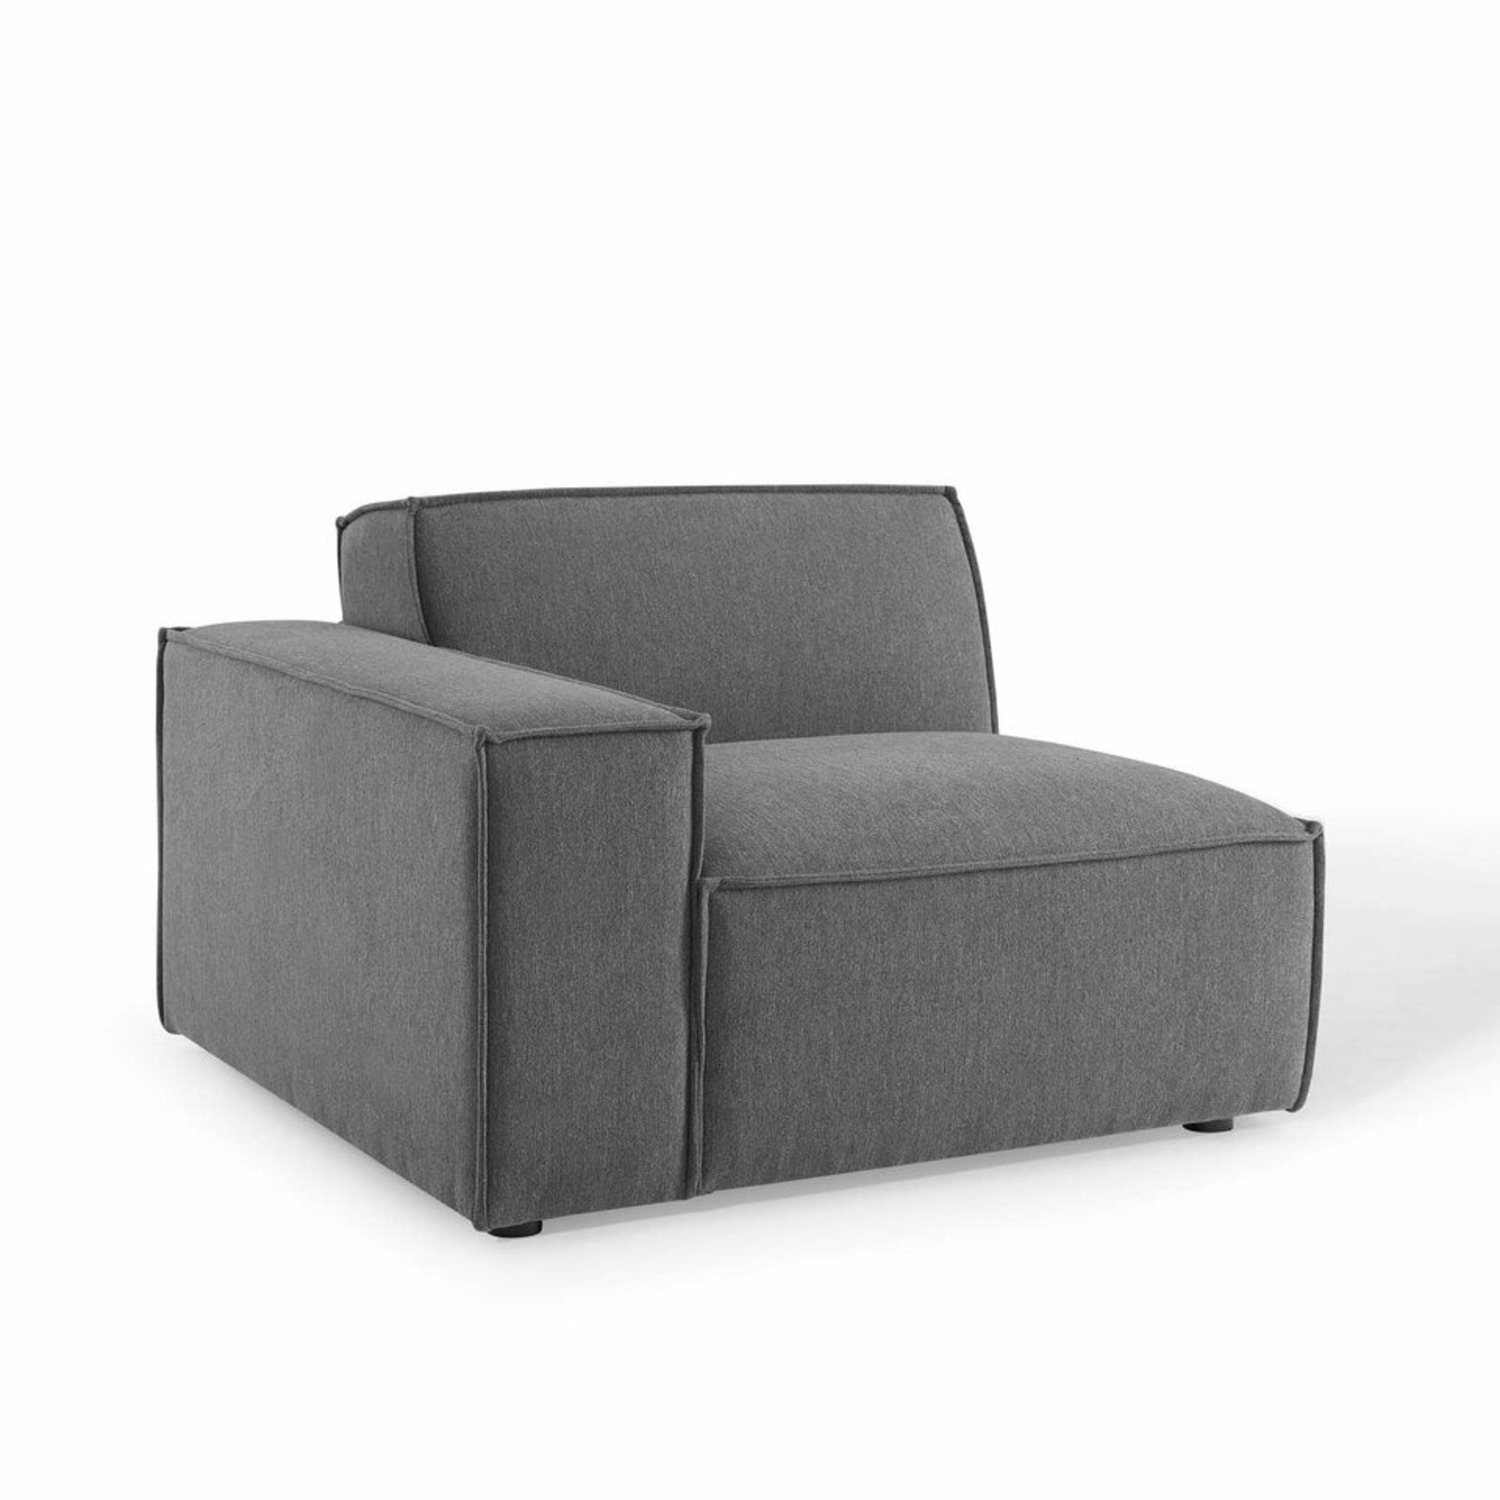 5-Piece Sectional Sofa In CharcoalW/ Piping Detail - image-4